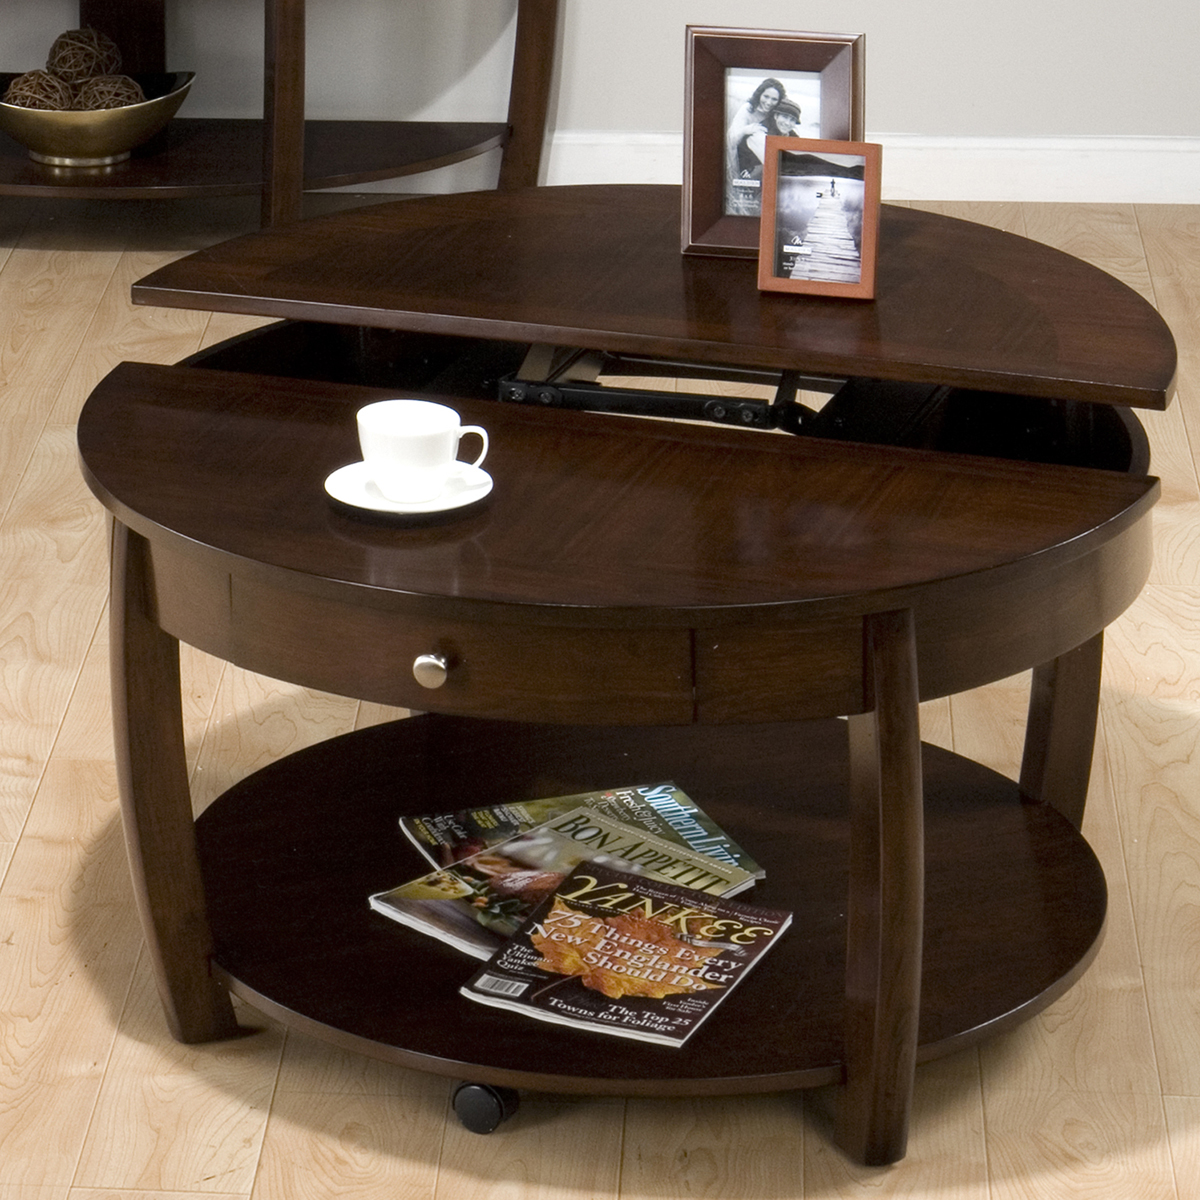 stunning round coffee tables with storage made of wooden beautified with  photo frame decorated in hardwood. The Round Coffee Tables with Storage   the Simple and Compact